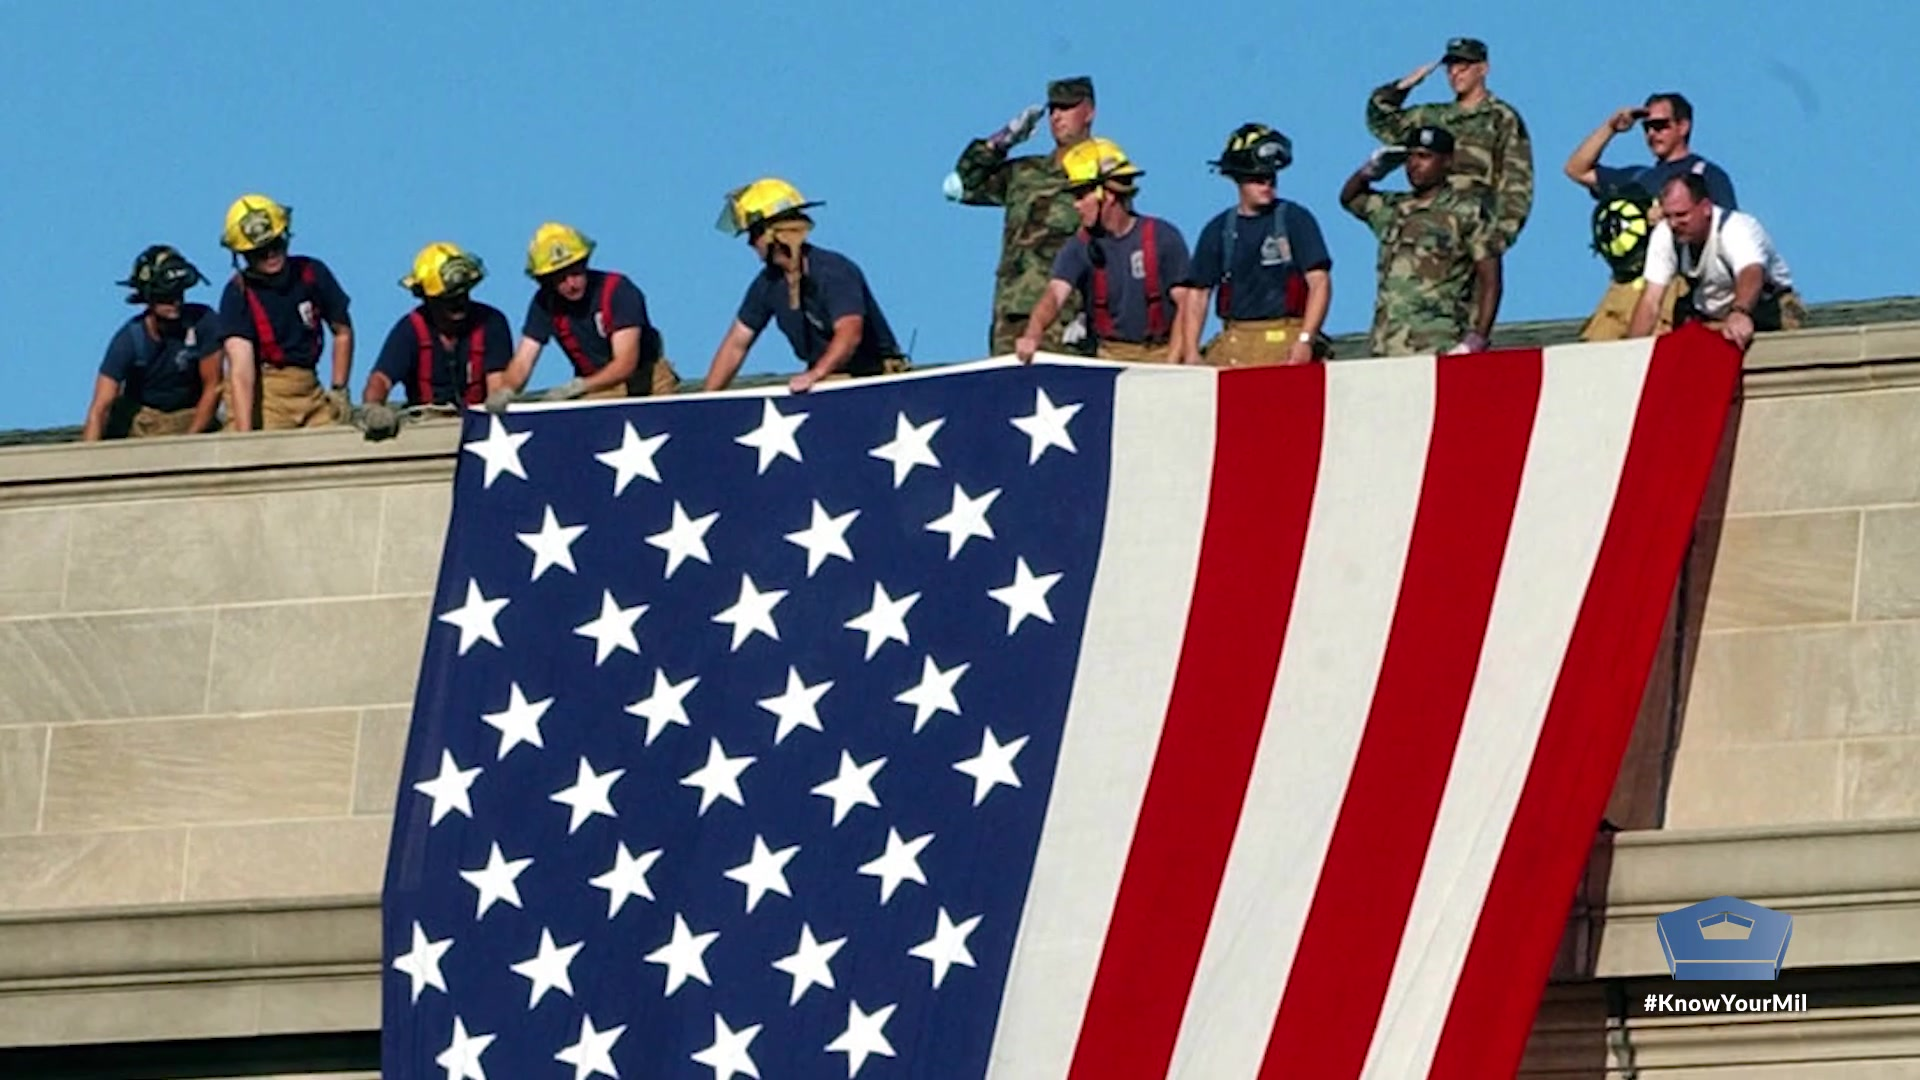 A Navy photojournalist recounts the story of how he captured a photo that has come to symbolize the hope and patriotism of the American people following the events of 9/11.  Video by Petty Officer 2nd Class Jesse Hyatt